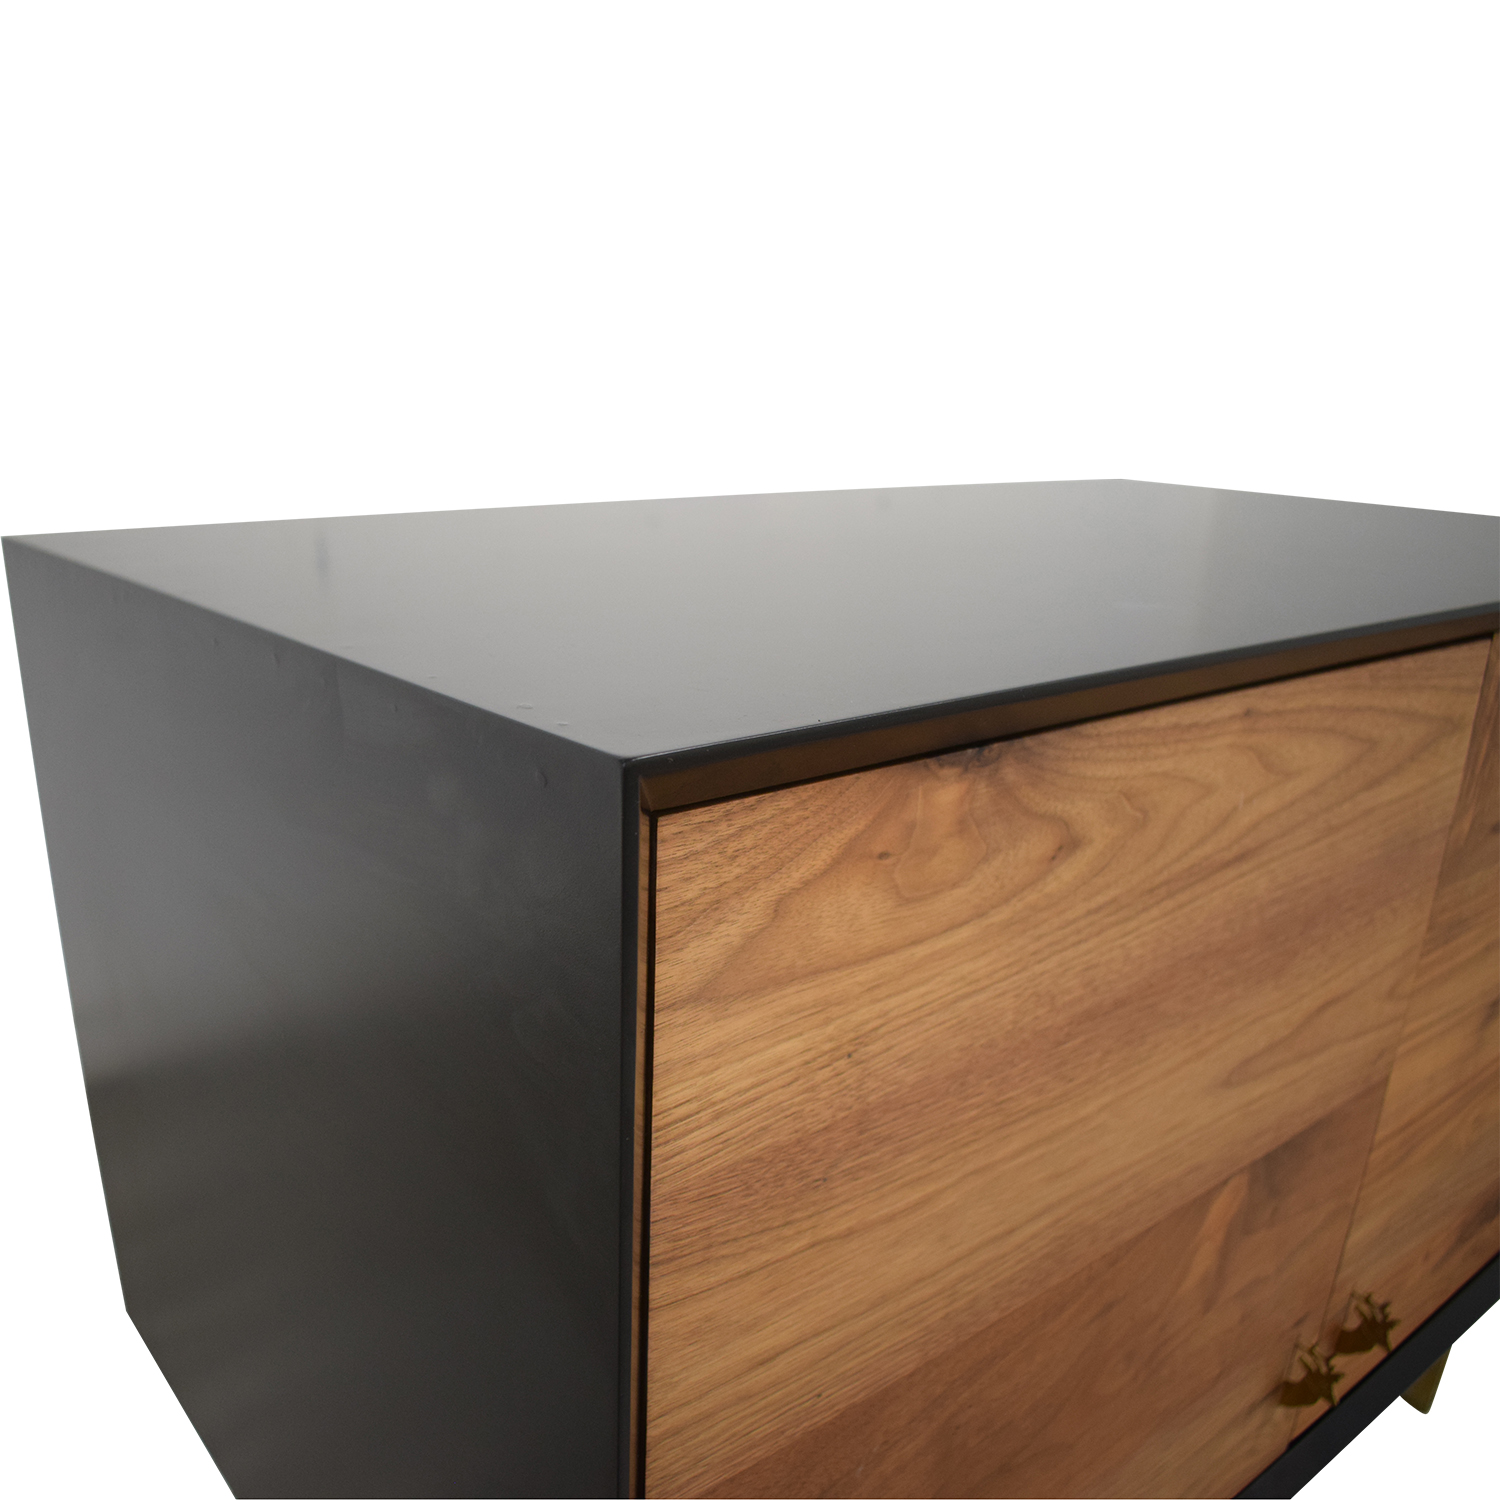 Organic Modernism Organic Modernism Custom Made Wood Media Cabinet on sale